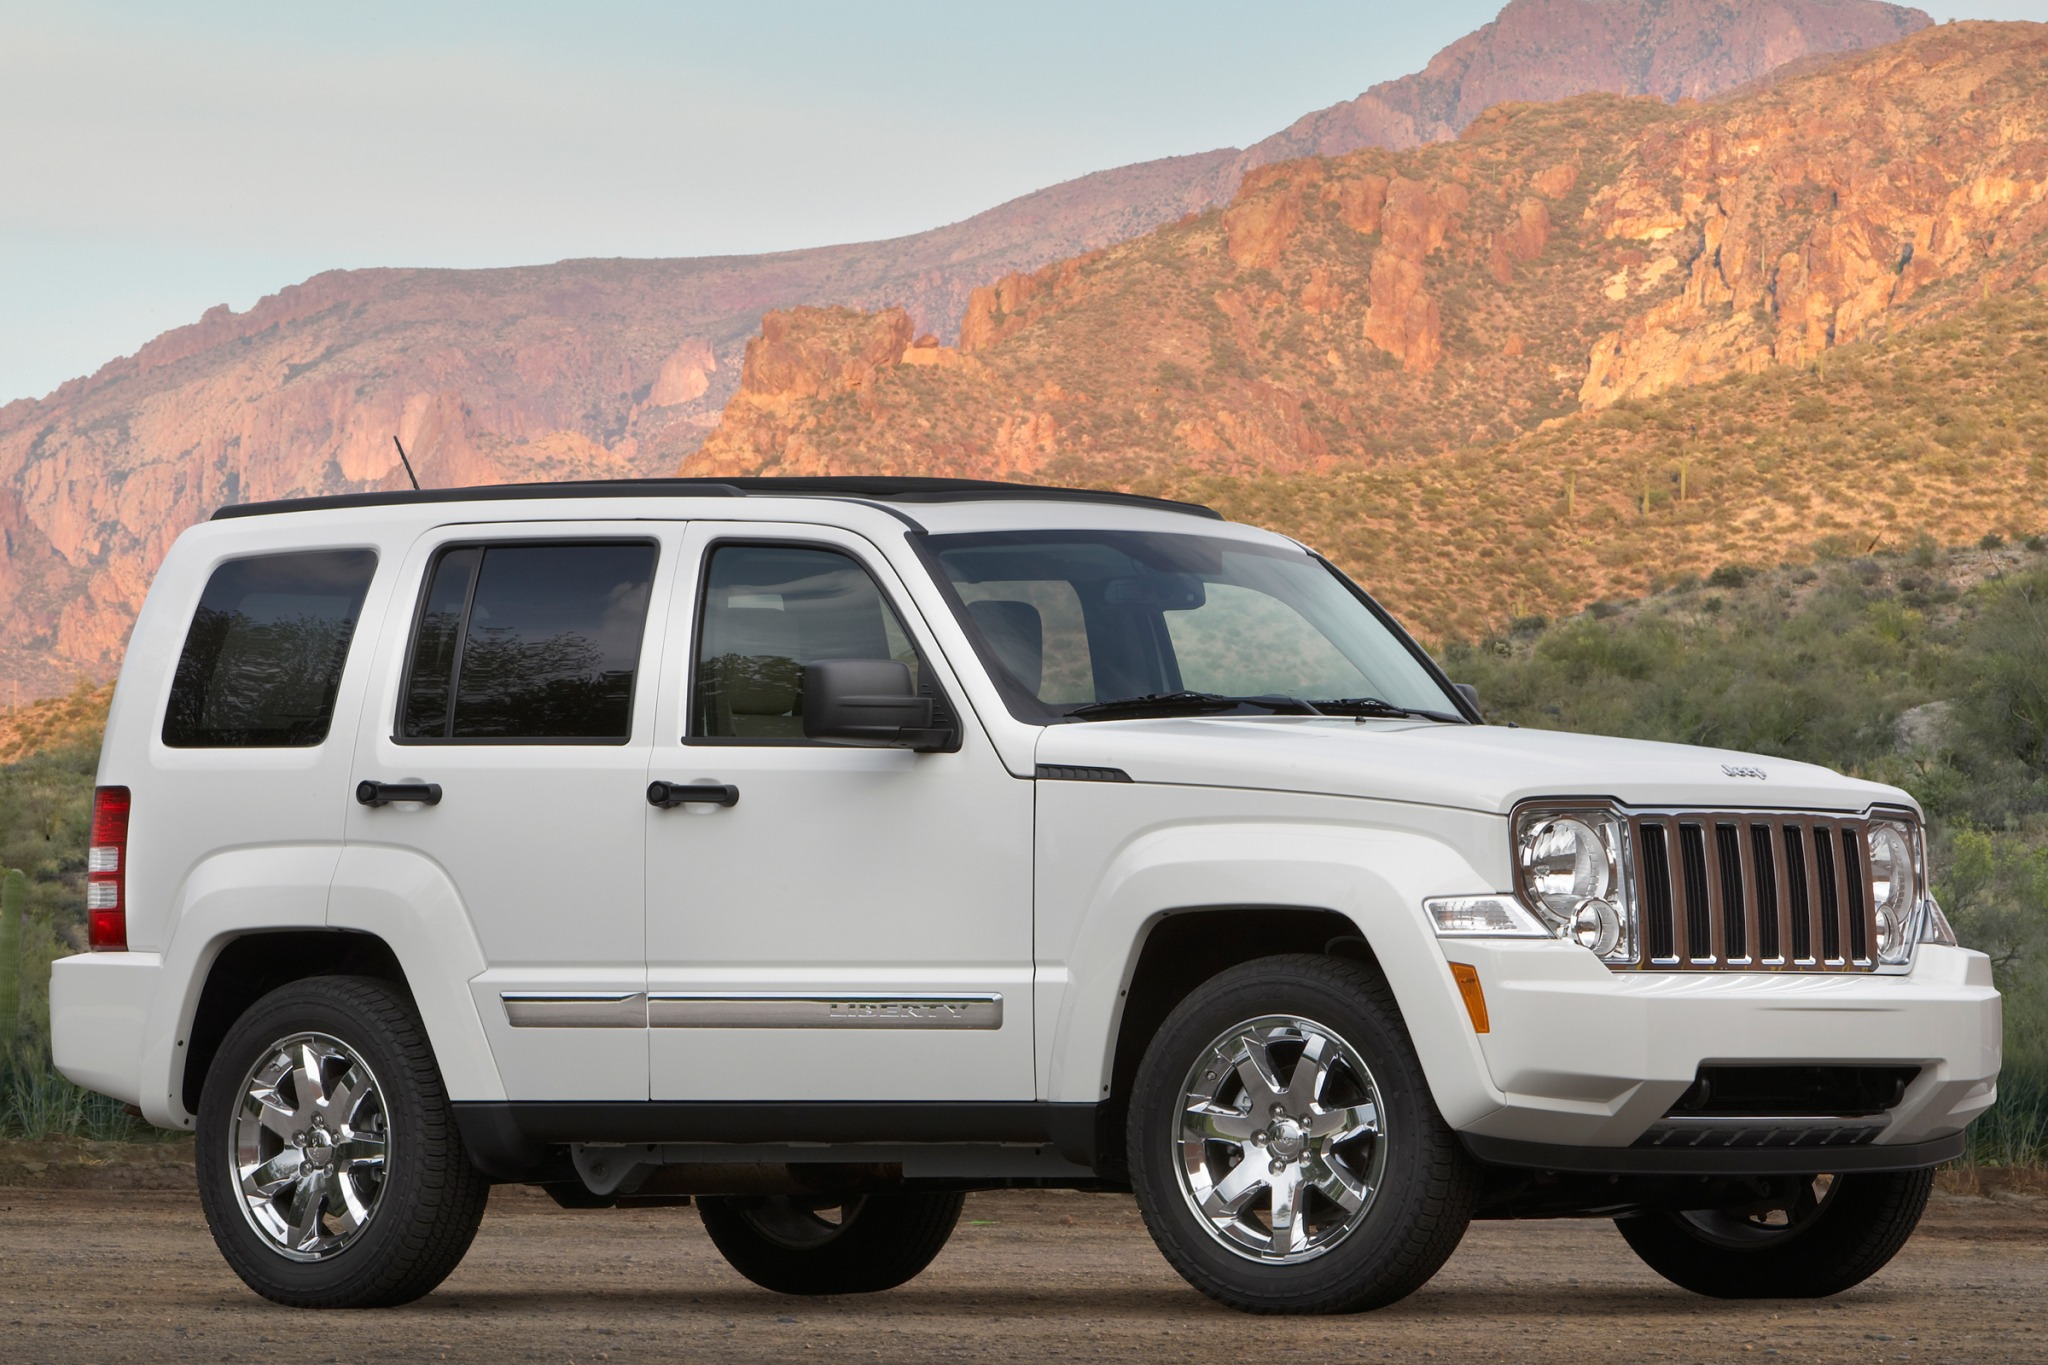 2010 Jeep Liberty Limited interior #2